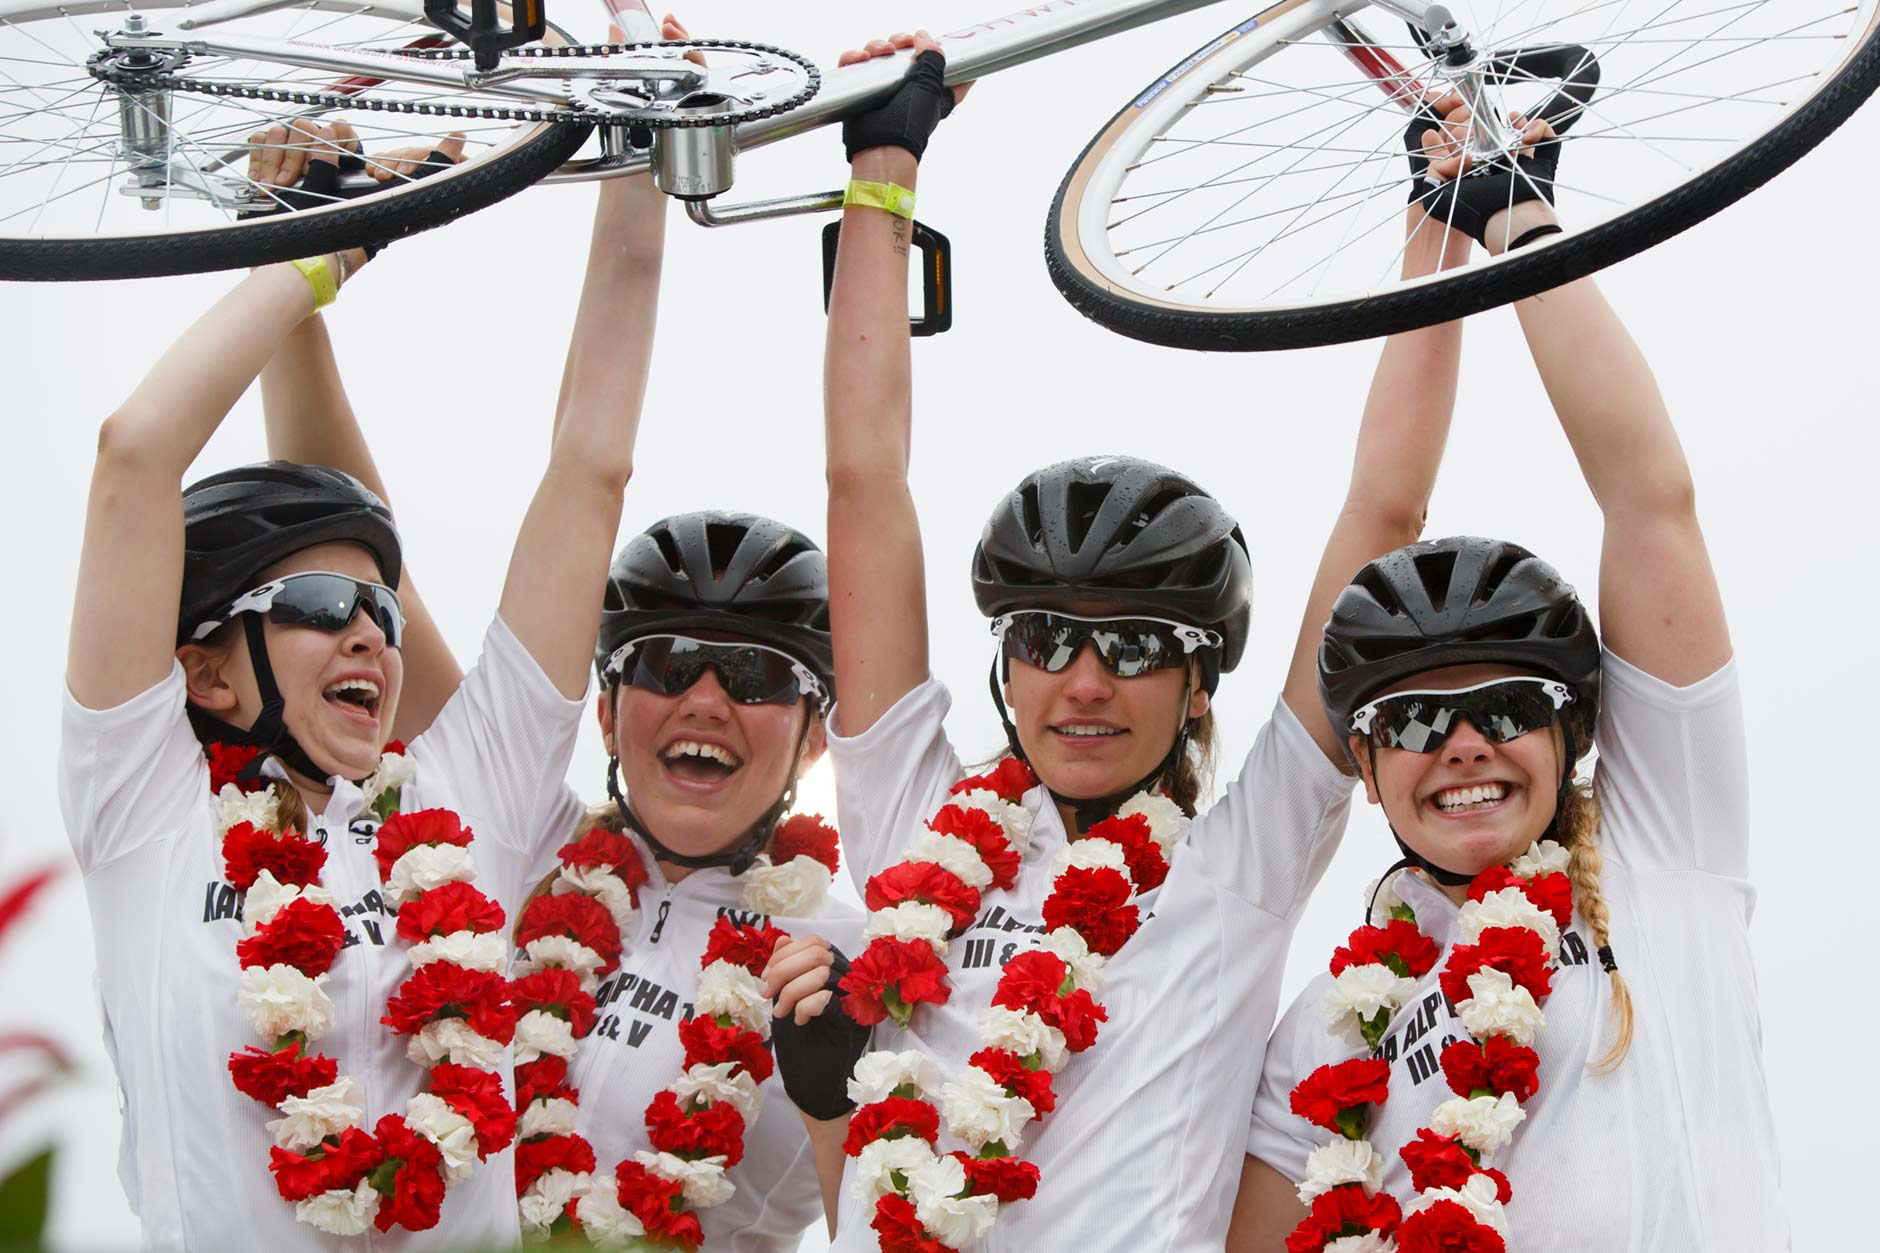 Kappa Alpha Theta riders Rachel Brown, left, Grace Bennett, left, Evelyn Malcomb and Sydney Keaton celebrate their victory in the Women's Little 500 at Bill Armstrong Stadium on Friday, April 21, 2017. (James Brosher/IU Communications)